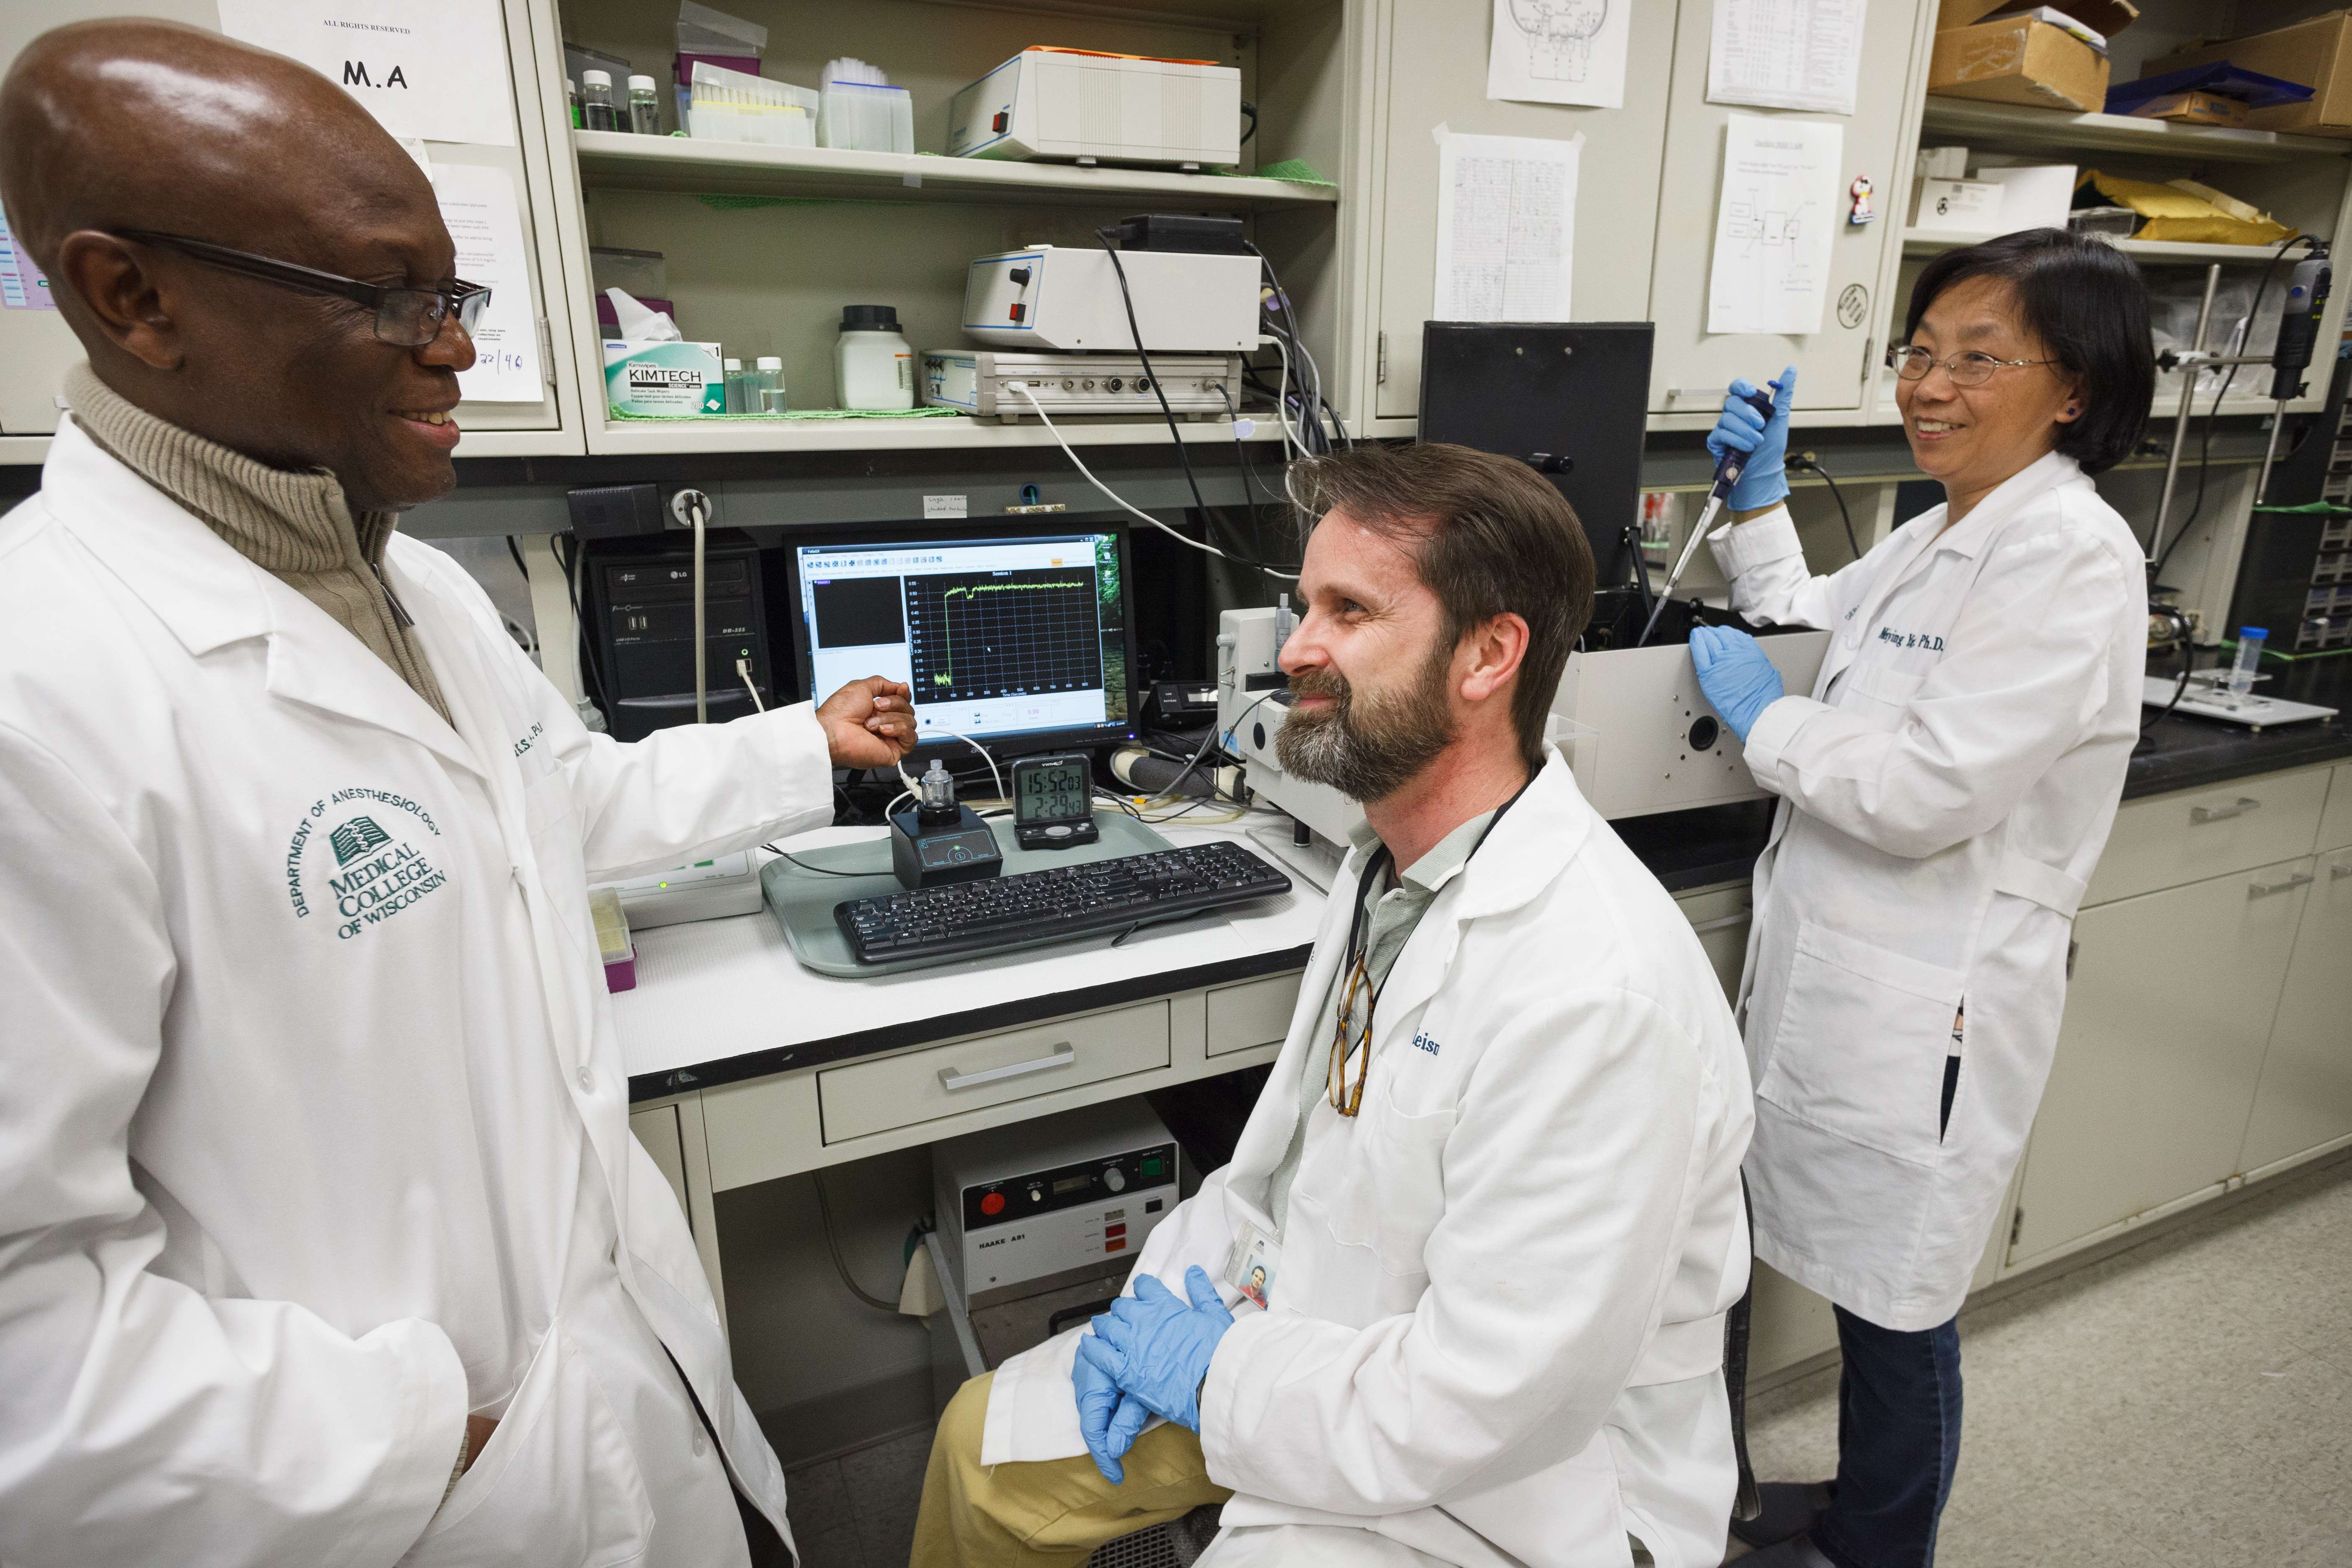 Four researchers in the lab